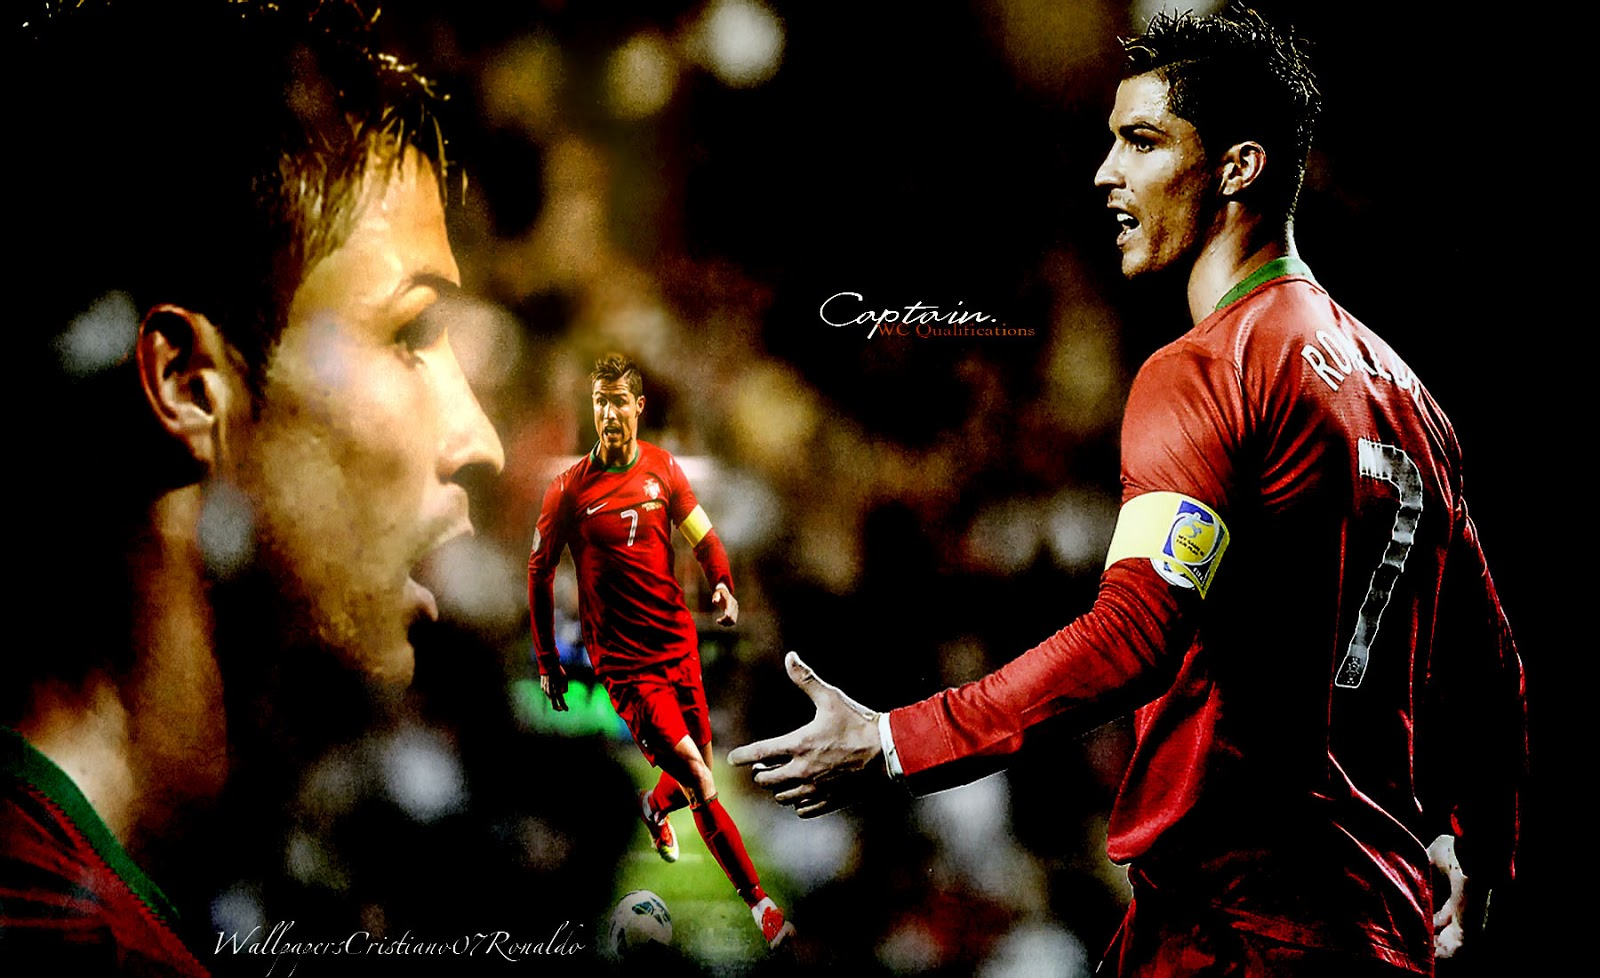 Cristiano ronaldo wallpapers captain cristiano ronaldo - C ronaldo wallpaper portugal ...